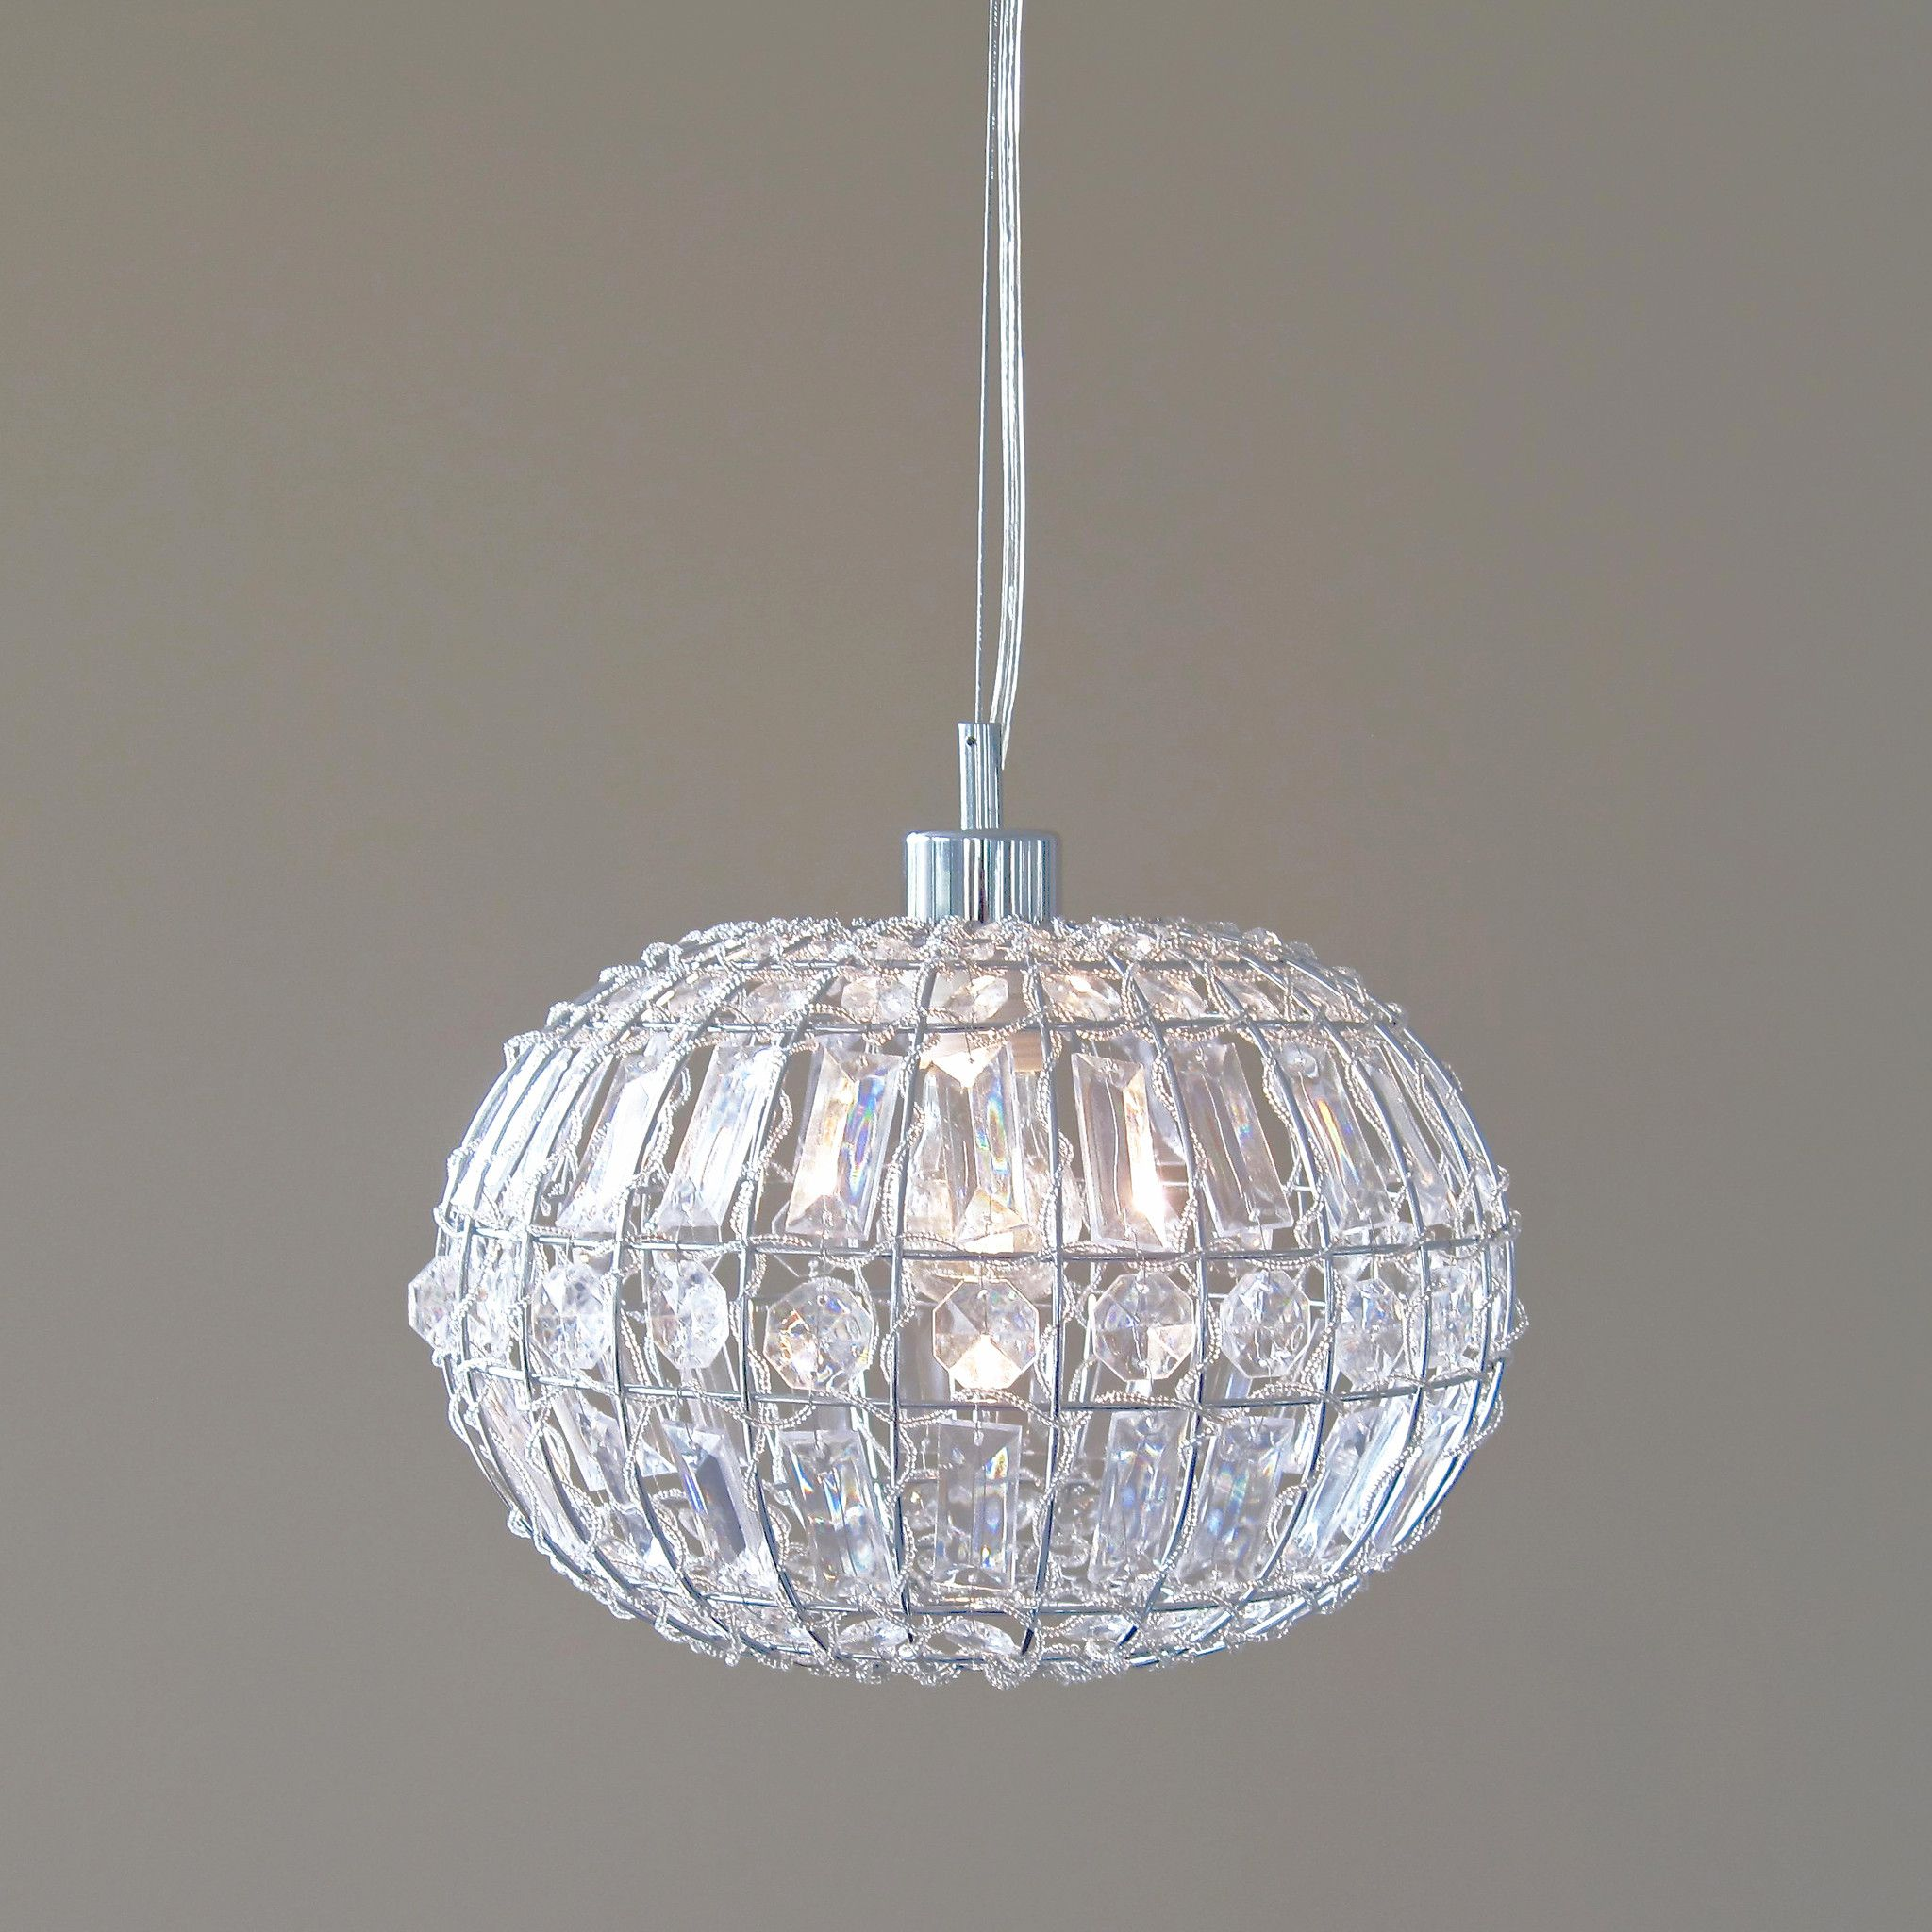 wholesale light buy modern online hotel led w lights crystal ball best strong pendant